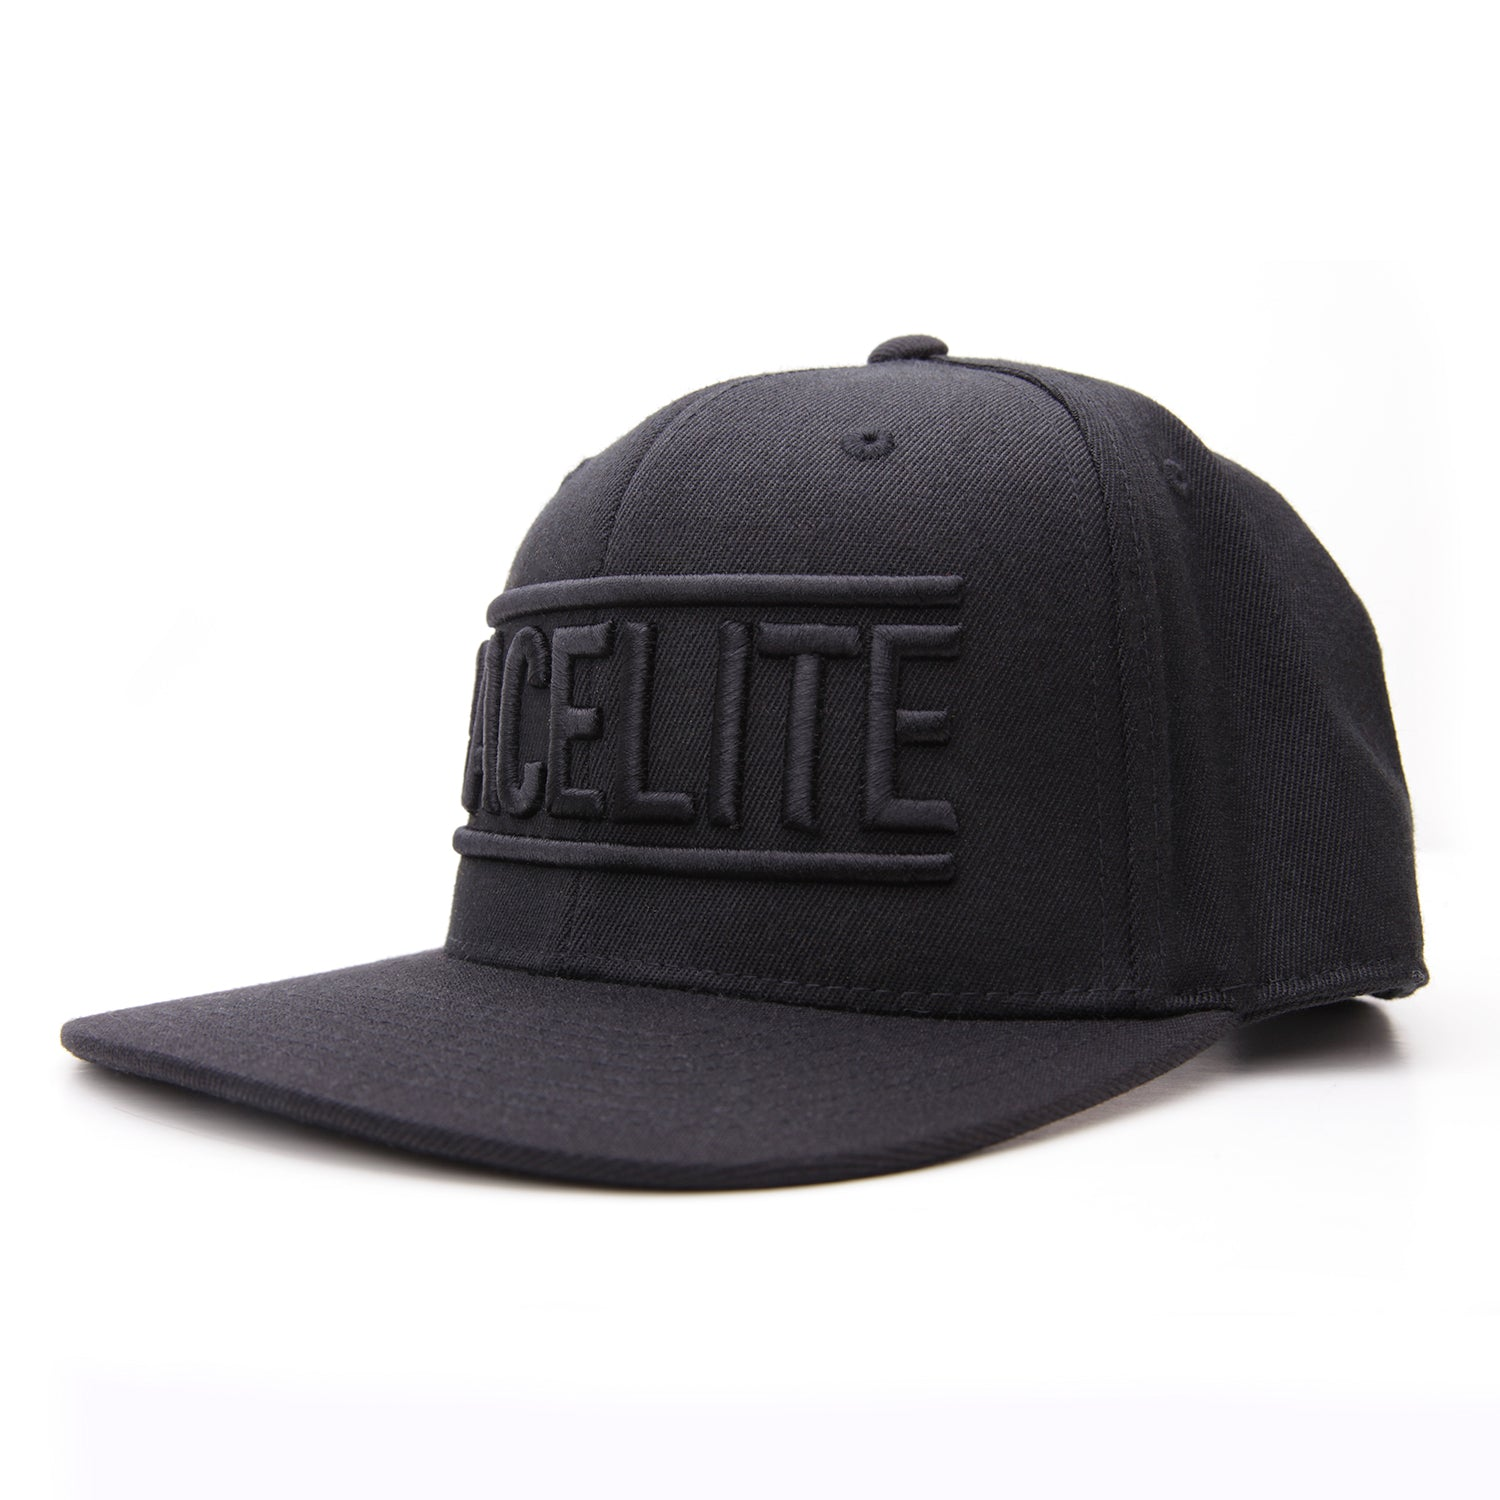 Racelite Designs Flat Brim Black Emblem Flex Snap Back Hat Product View 1